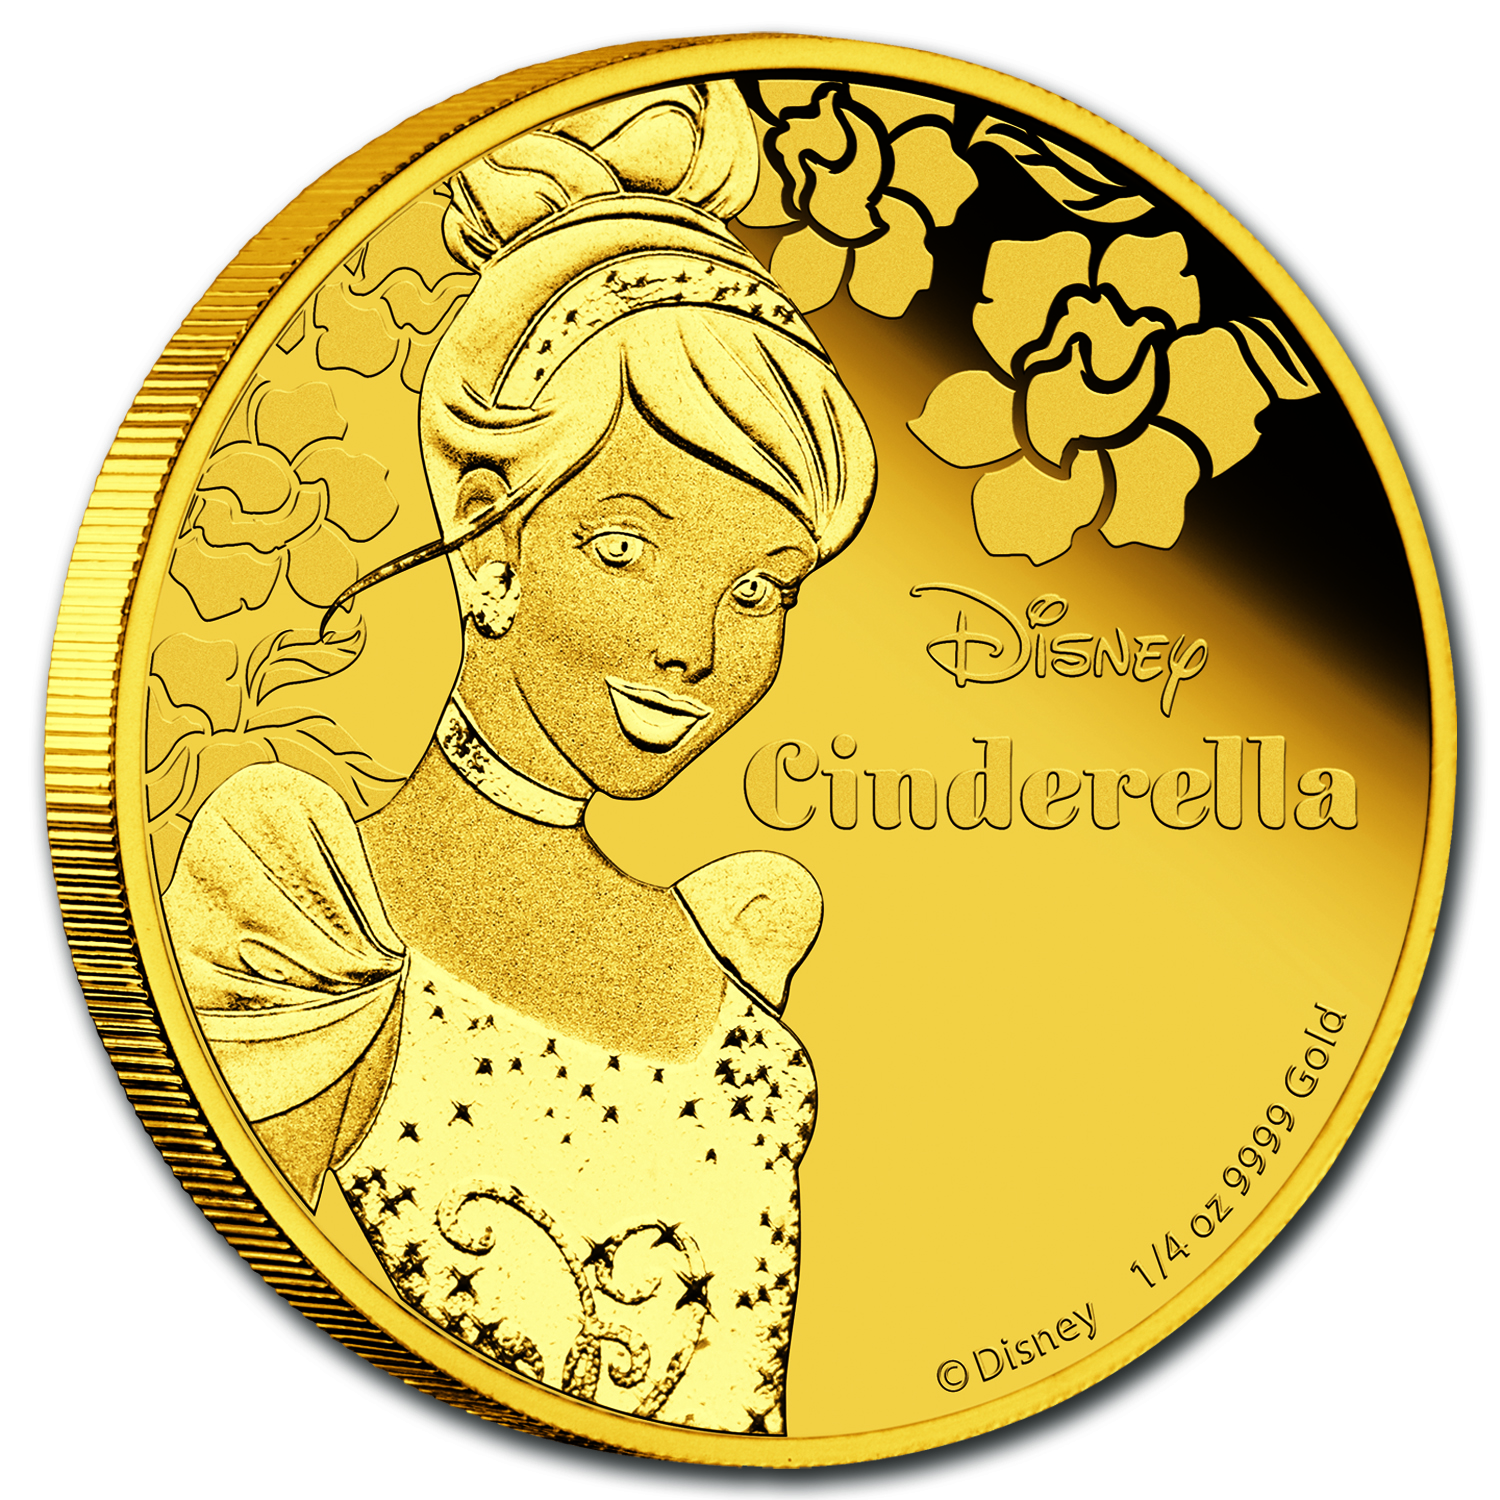 2015 Niue 1/4 oz Proof Gold $25 Disney Princess Cinderella